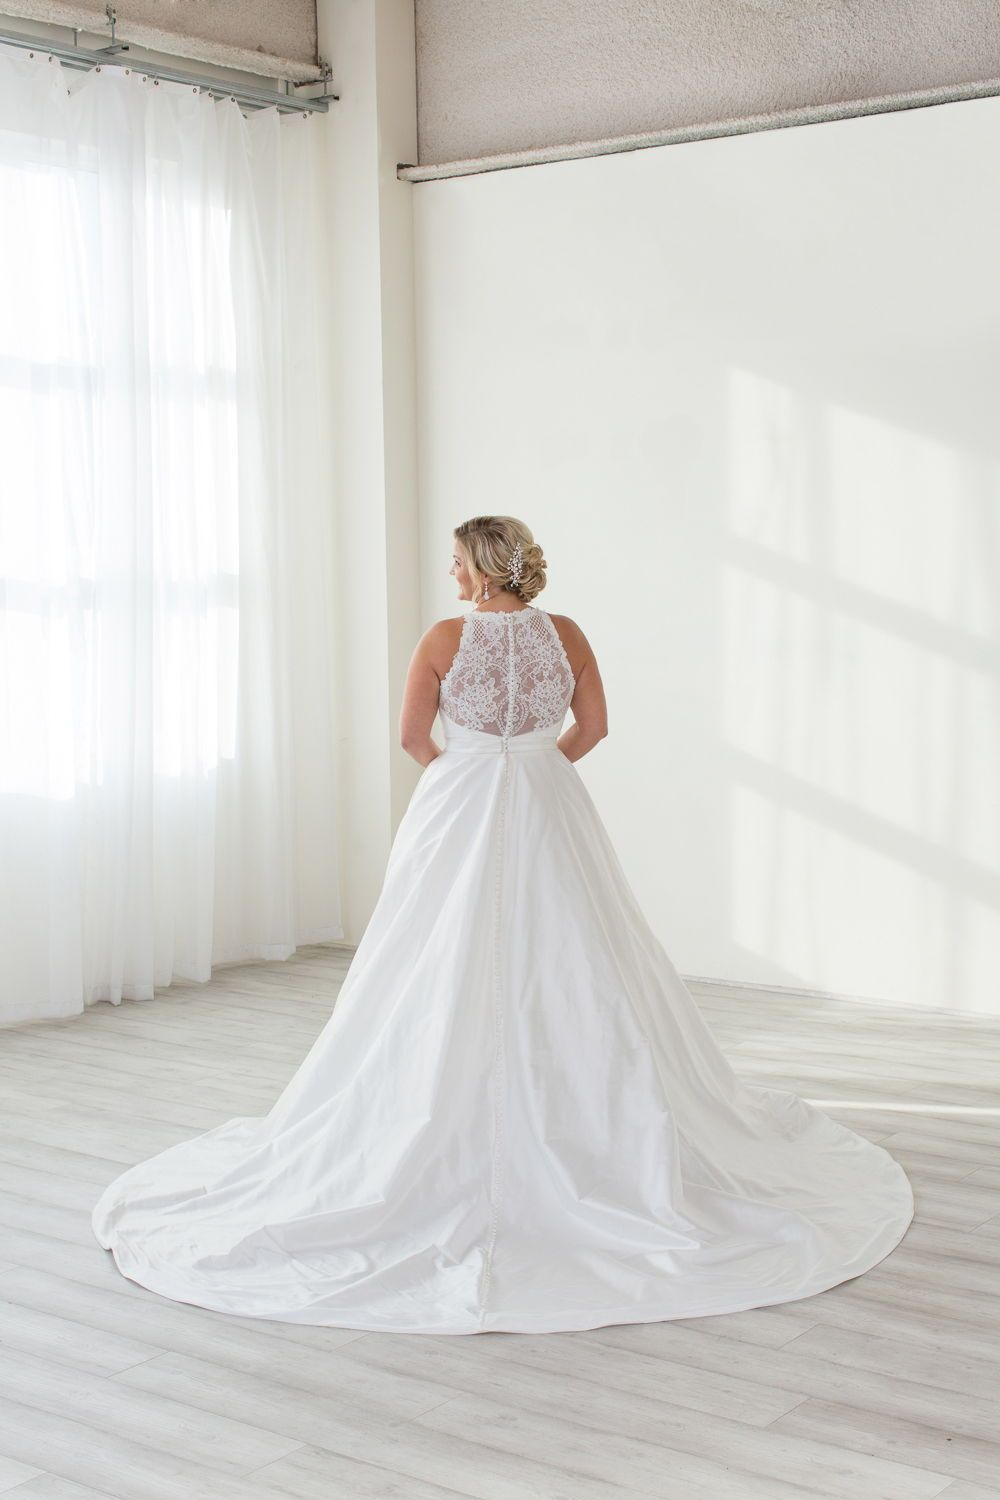 Buttons Allllll The Way Down The Back Of This Classic And Elegant Wedding Dress L Wedding Dress With Pockets Wedding Dresses Plus Size Wedding Dresses Unique